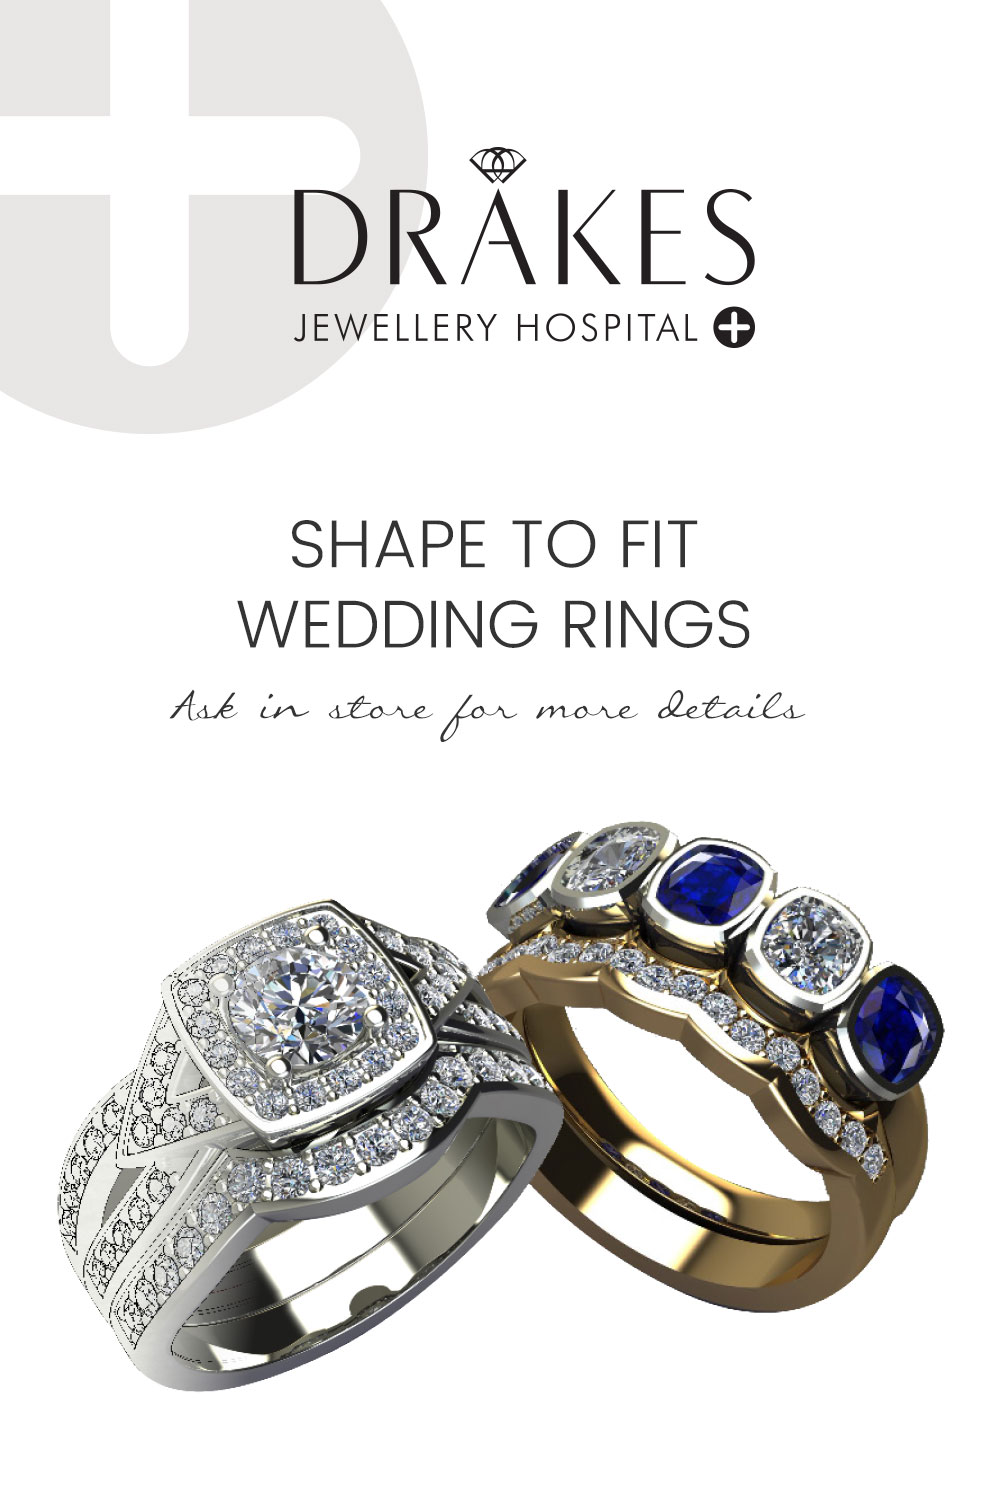 Drakes Jewellers Plymouth, Shape to fit wedding rings, Drakes Jewellery Hospital